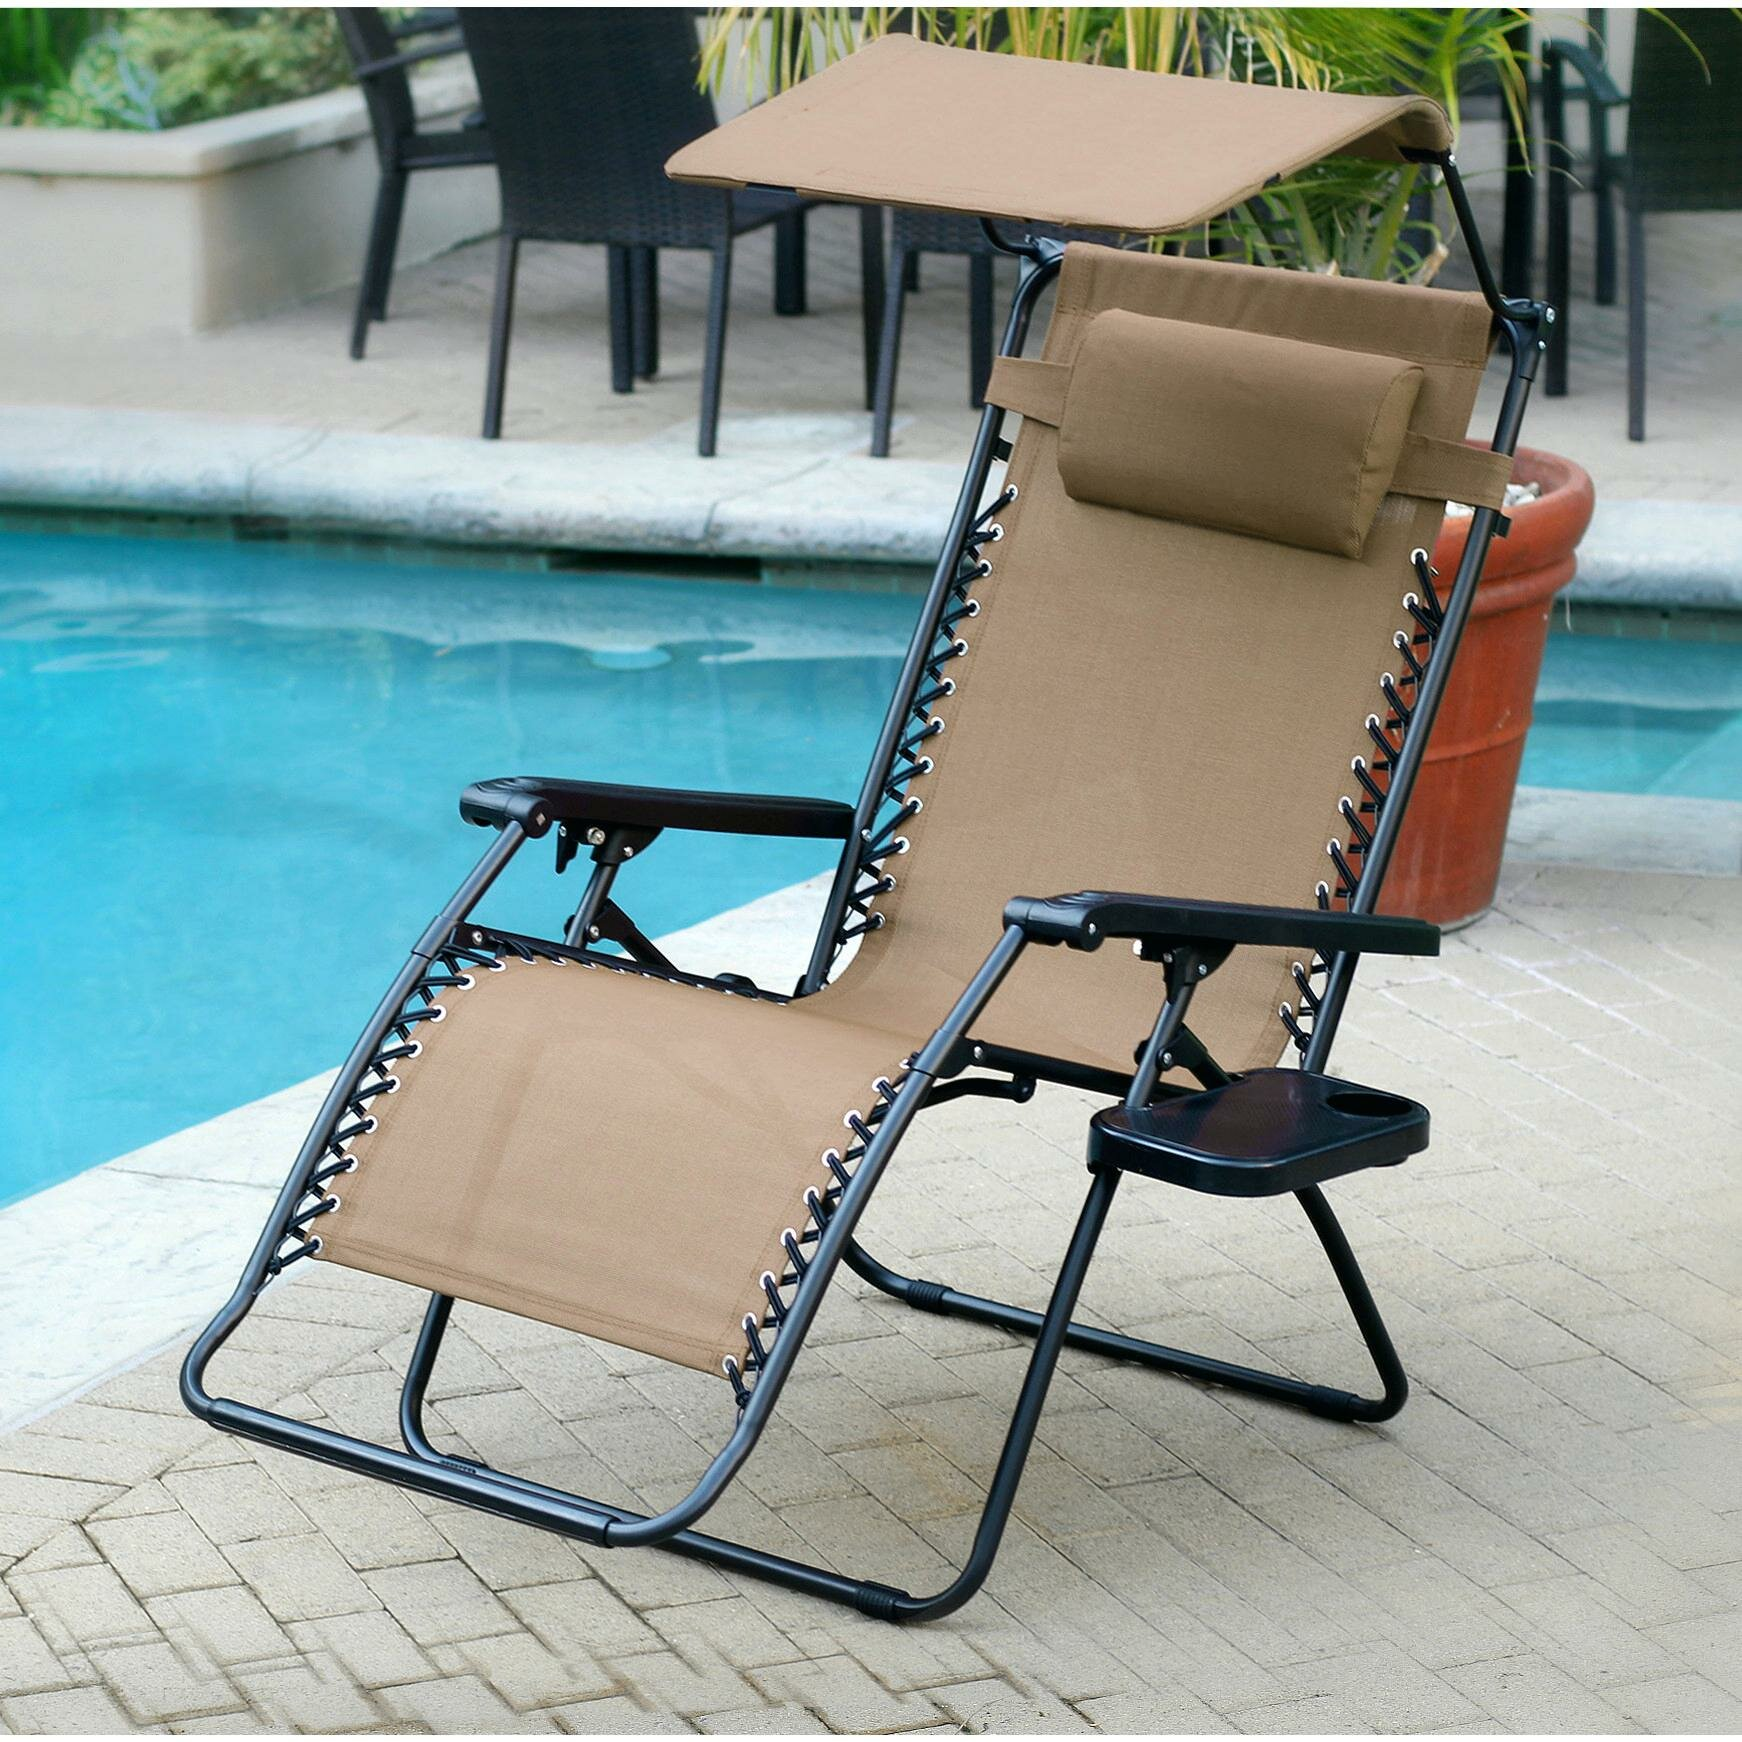 Lowes Rocking Chairs White | Patio Set Lowes | Lowes Chaise Lounge